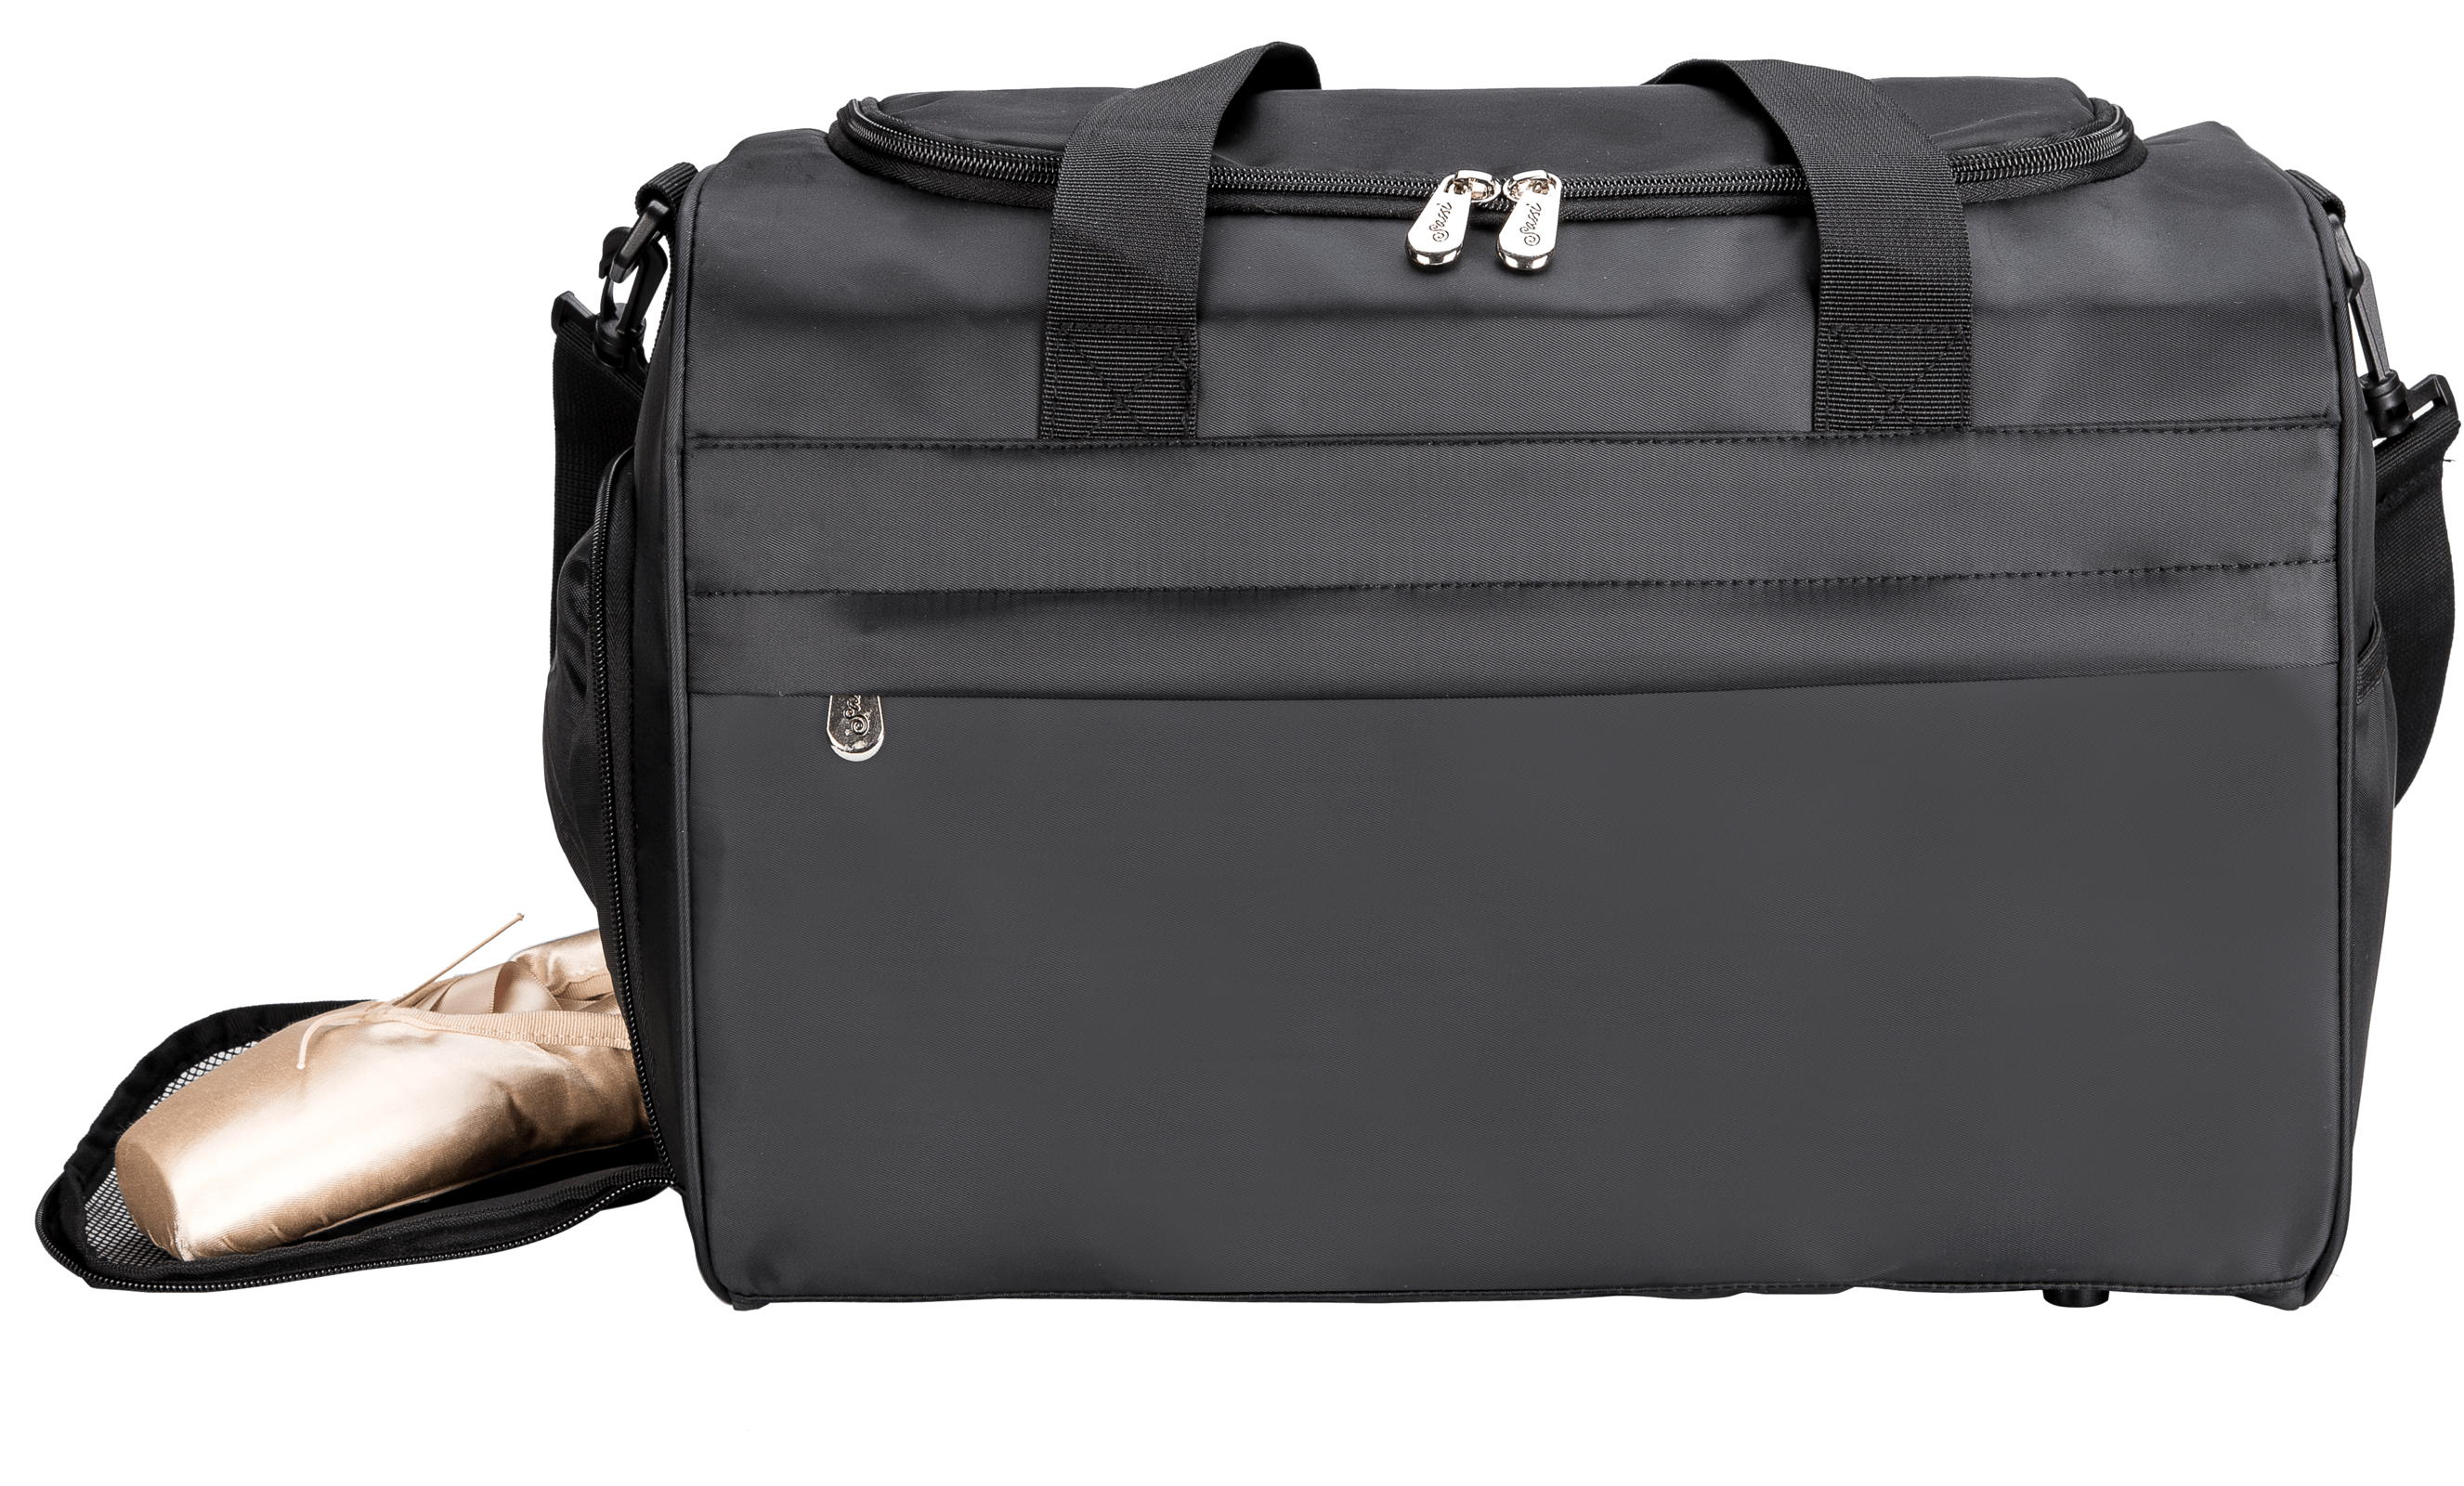 SD16Black   **NEW** Solid Black Duffel – BLANK & Ready to Customize – Starts Shipping June 2018